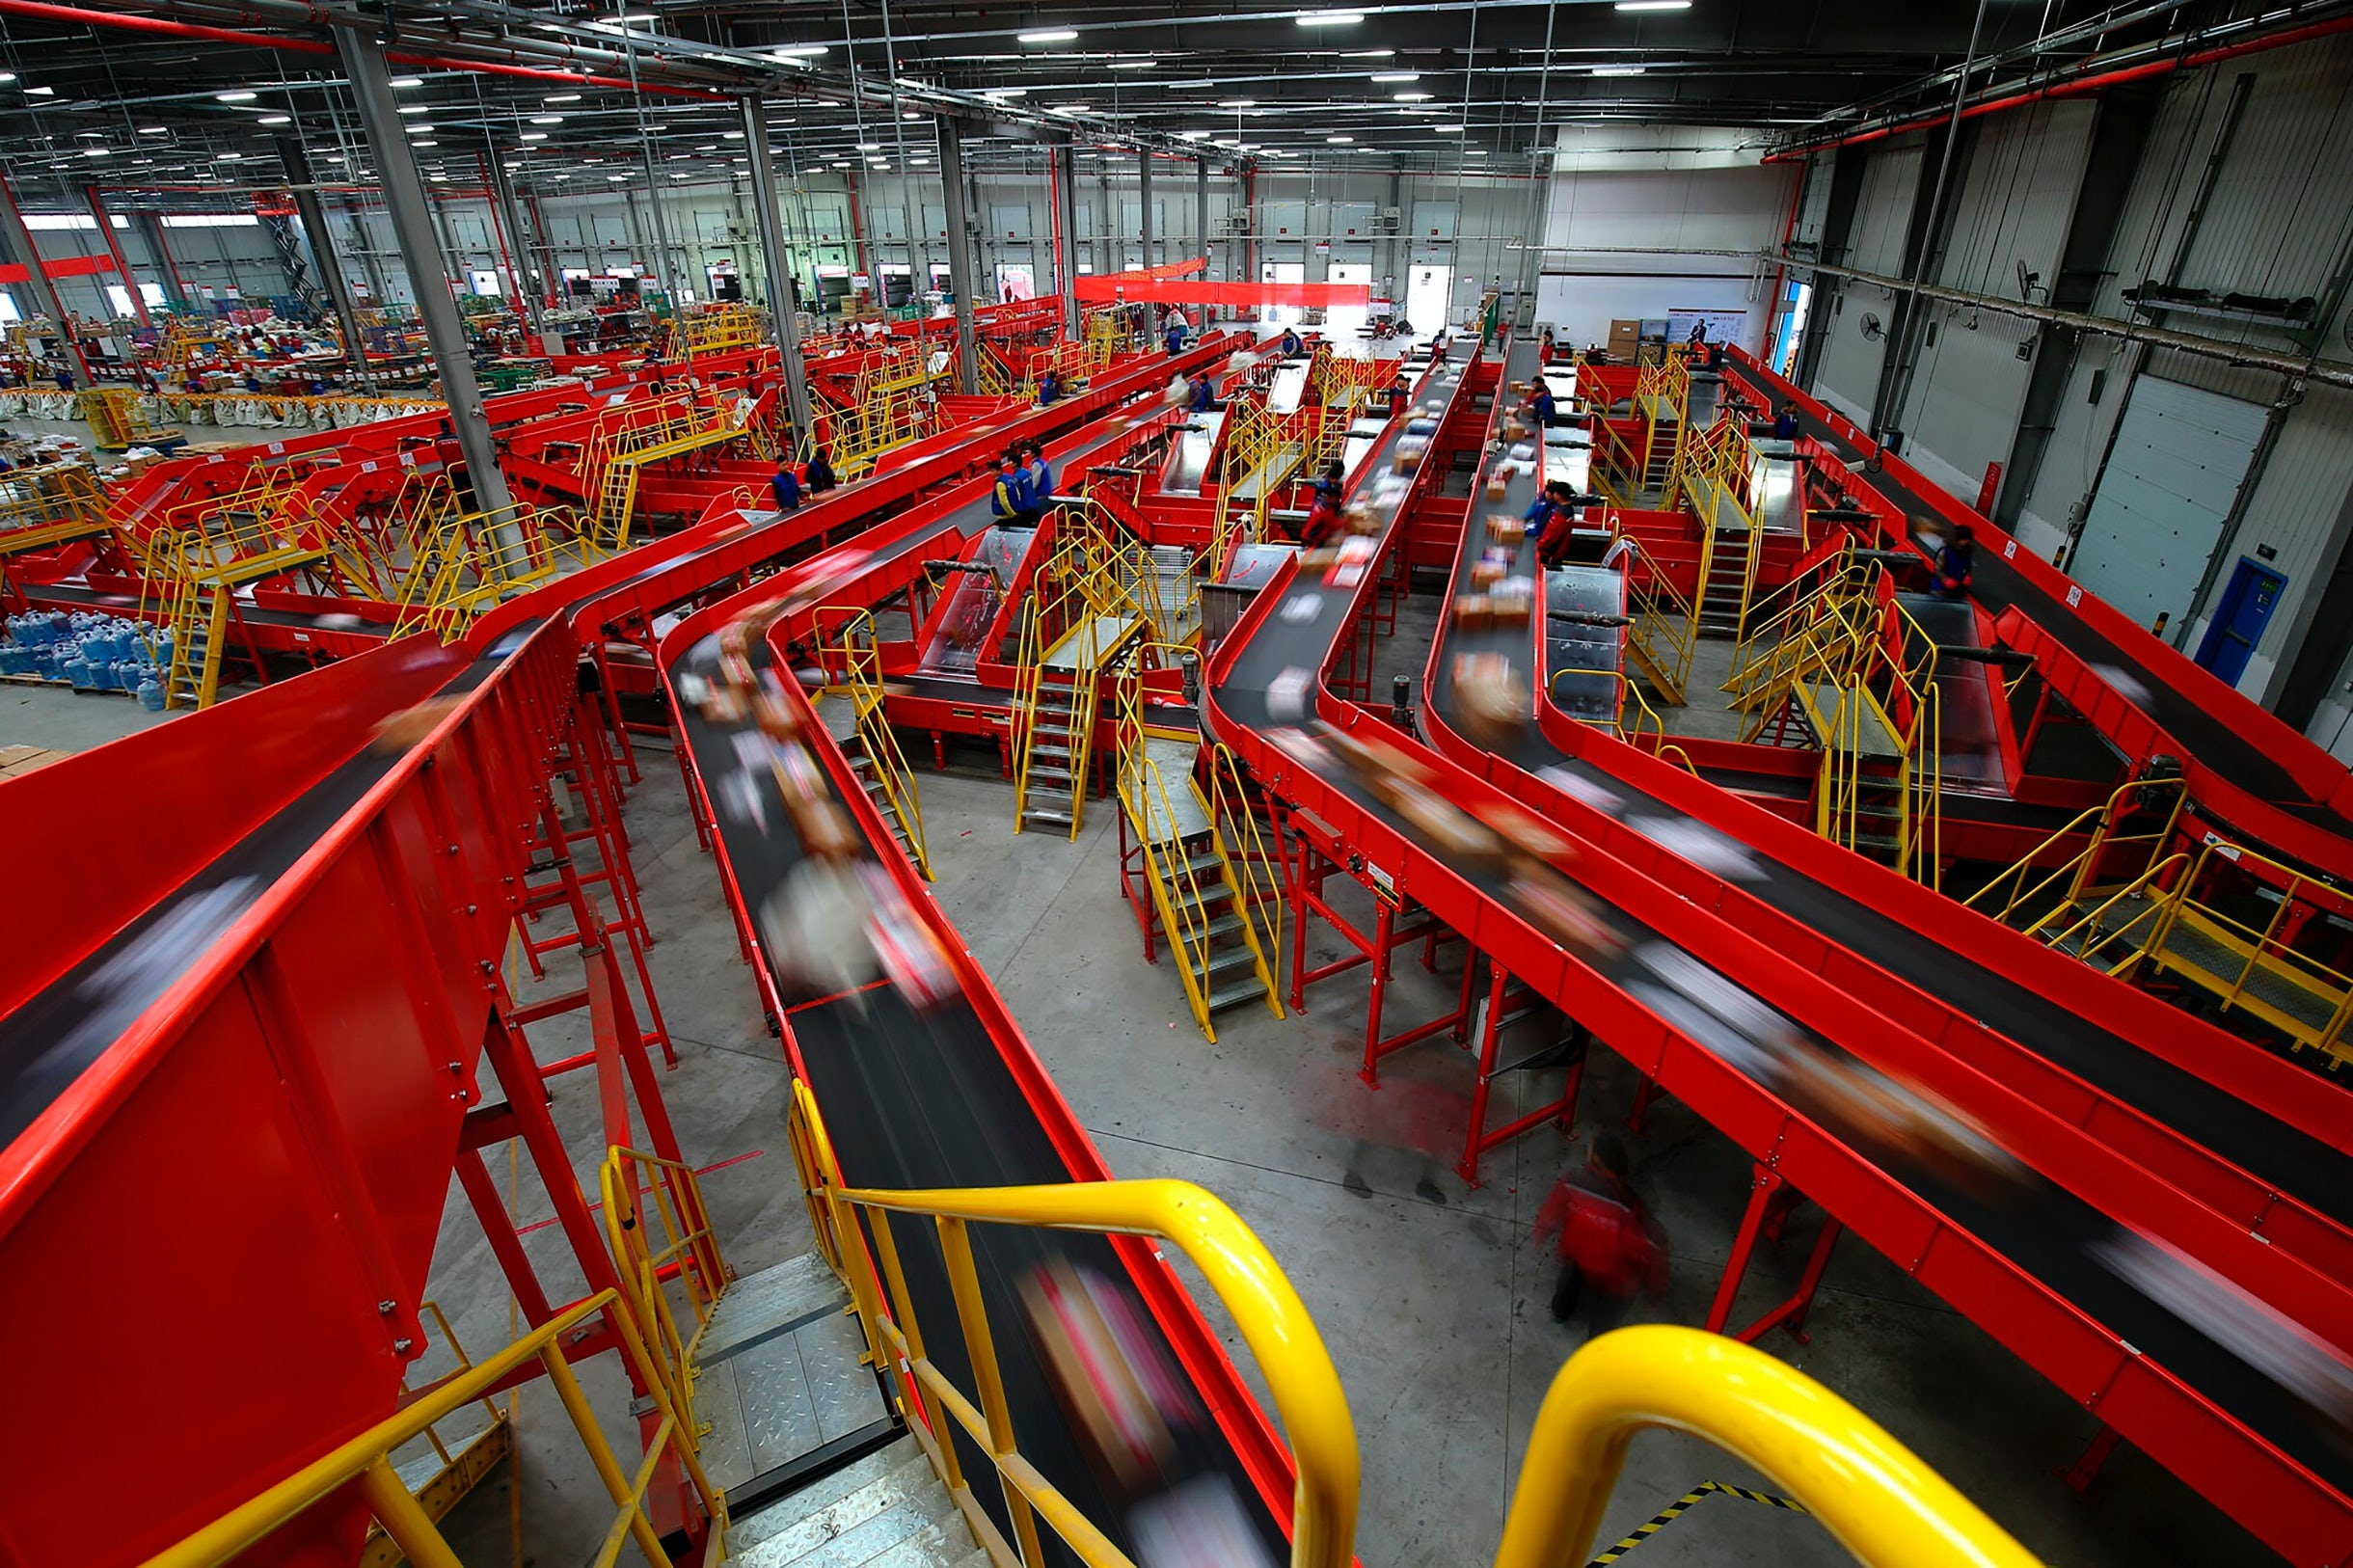 JD.com's automated logistics and warehouse complex in Gu'an, China | Source: Getty